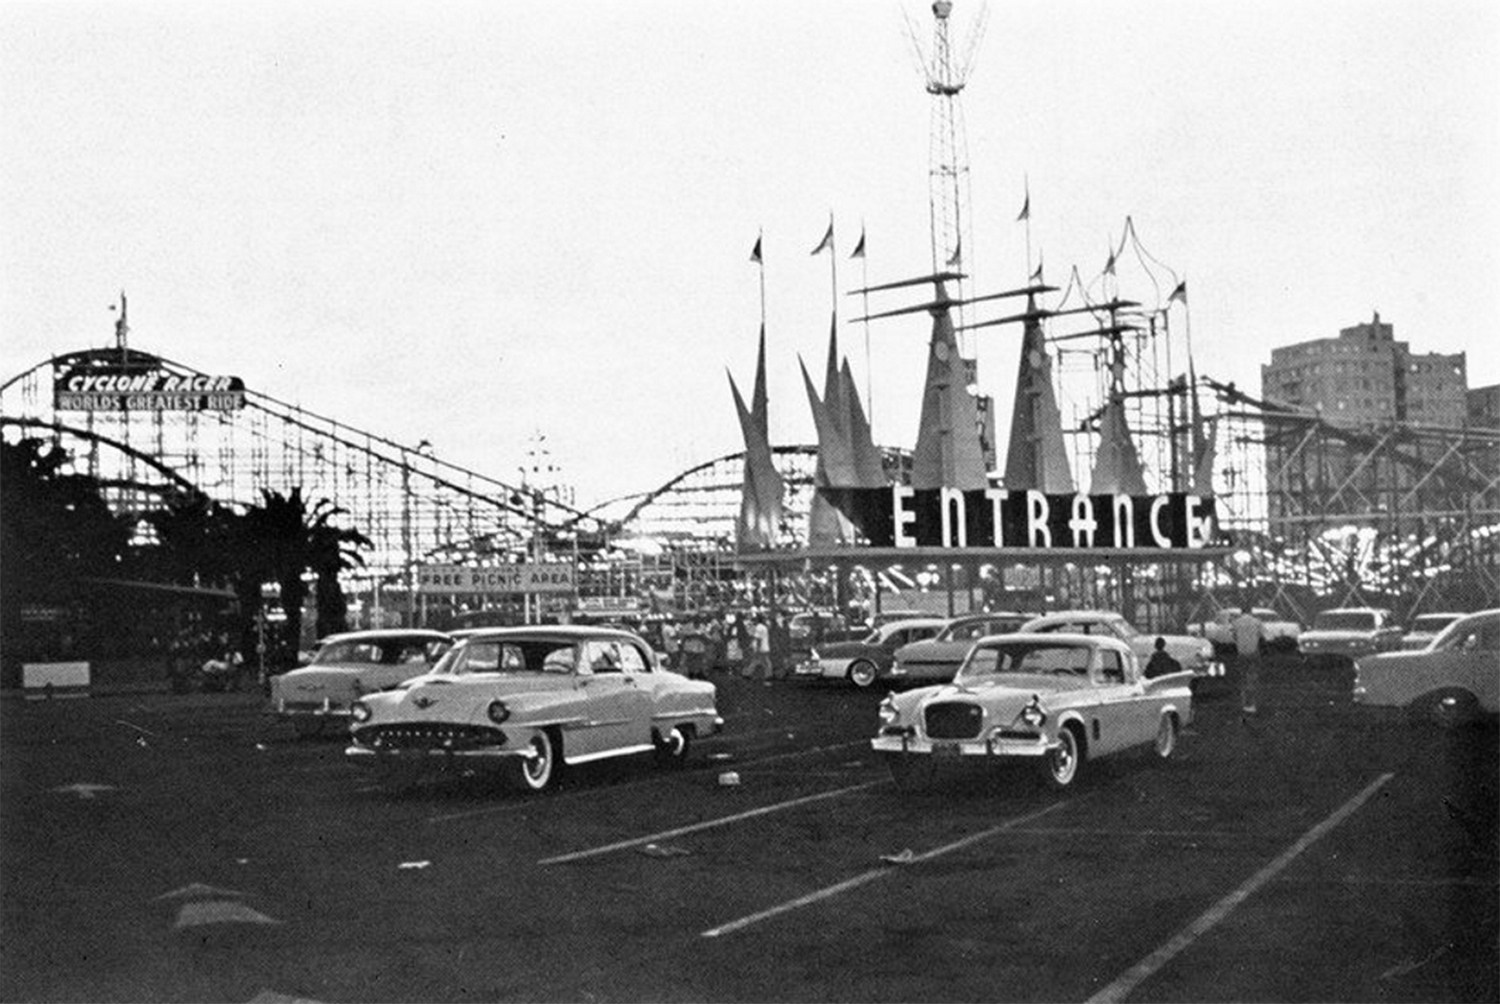 Entrance to The Pike in 1960 with the Cyclone Racer in the background.